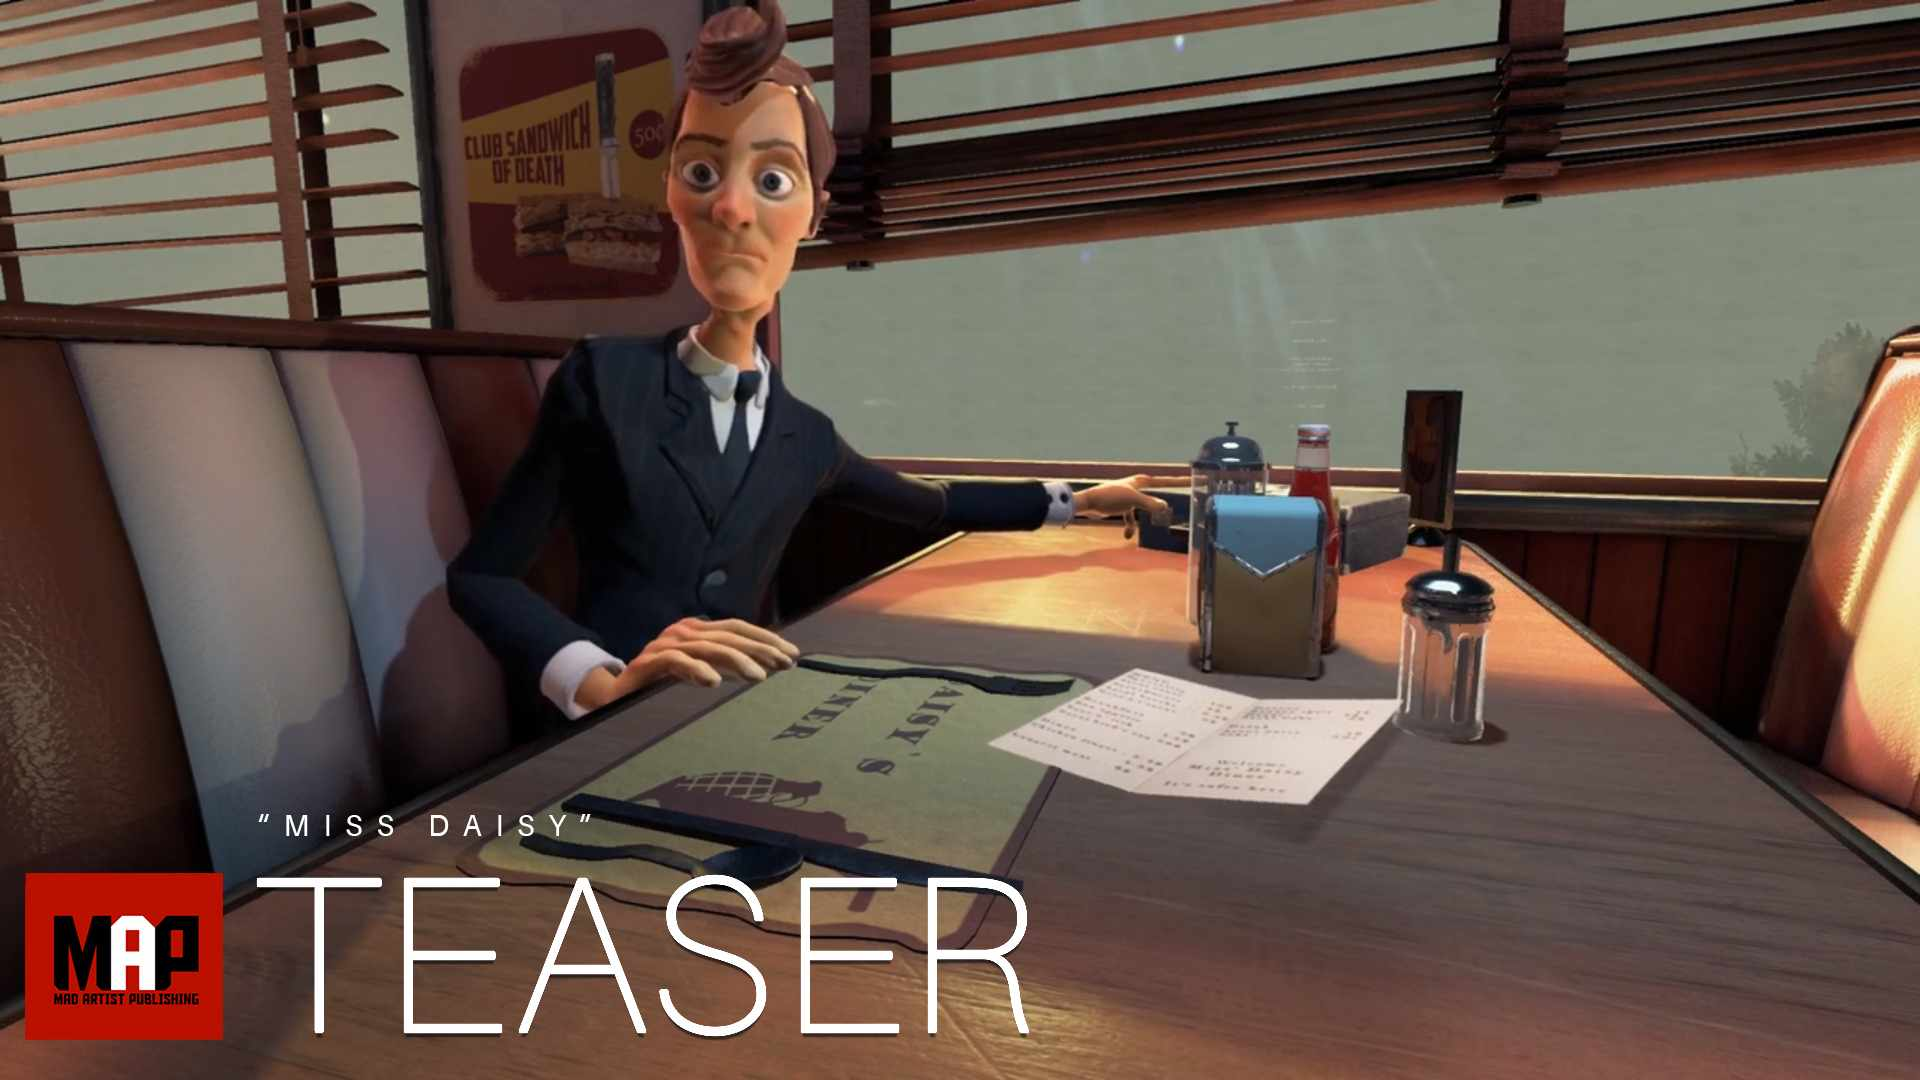 TRAILER | Funny CGI 3d Animated Short Film ** MISS DAISY ** Funny Action cg movie by NAD-UQAC